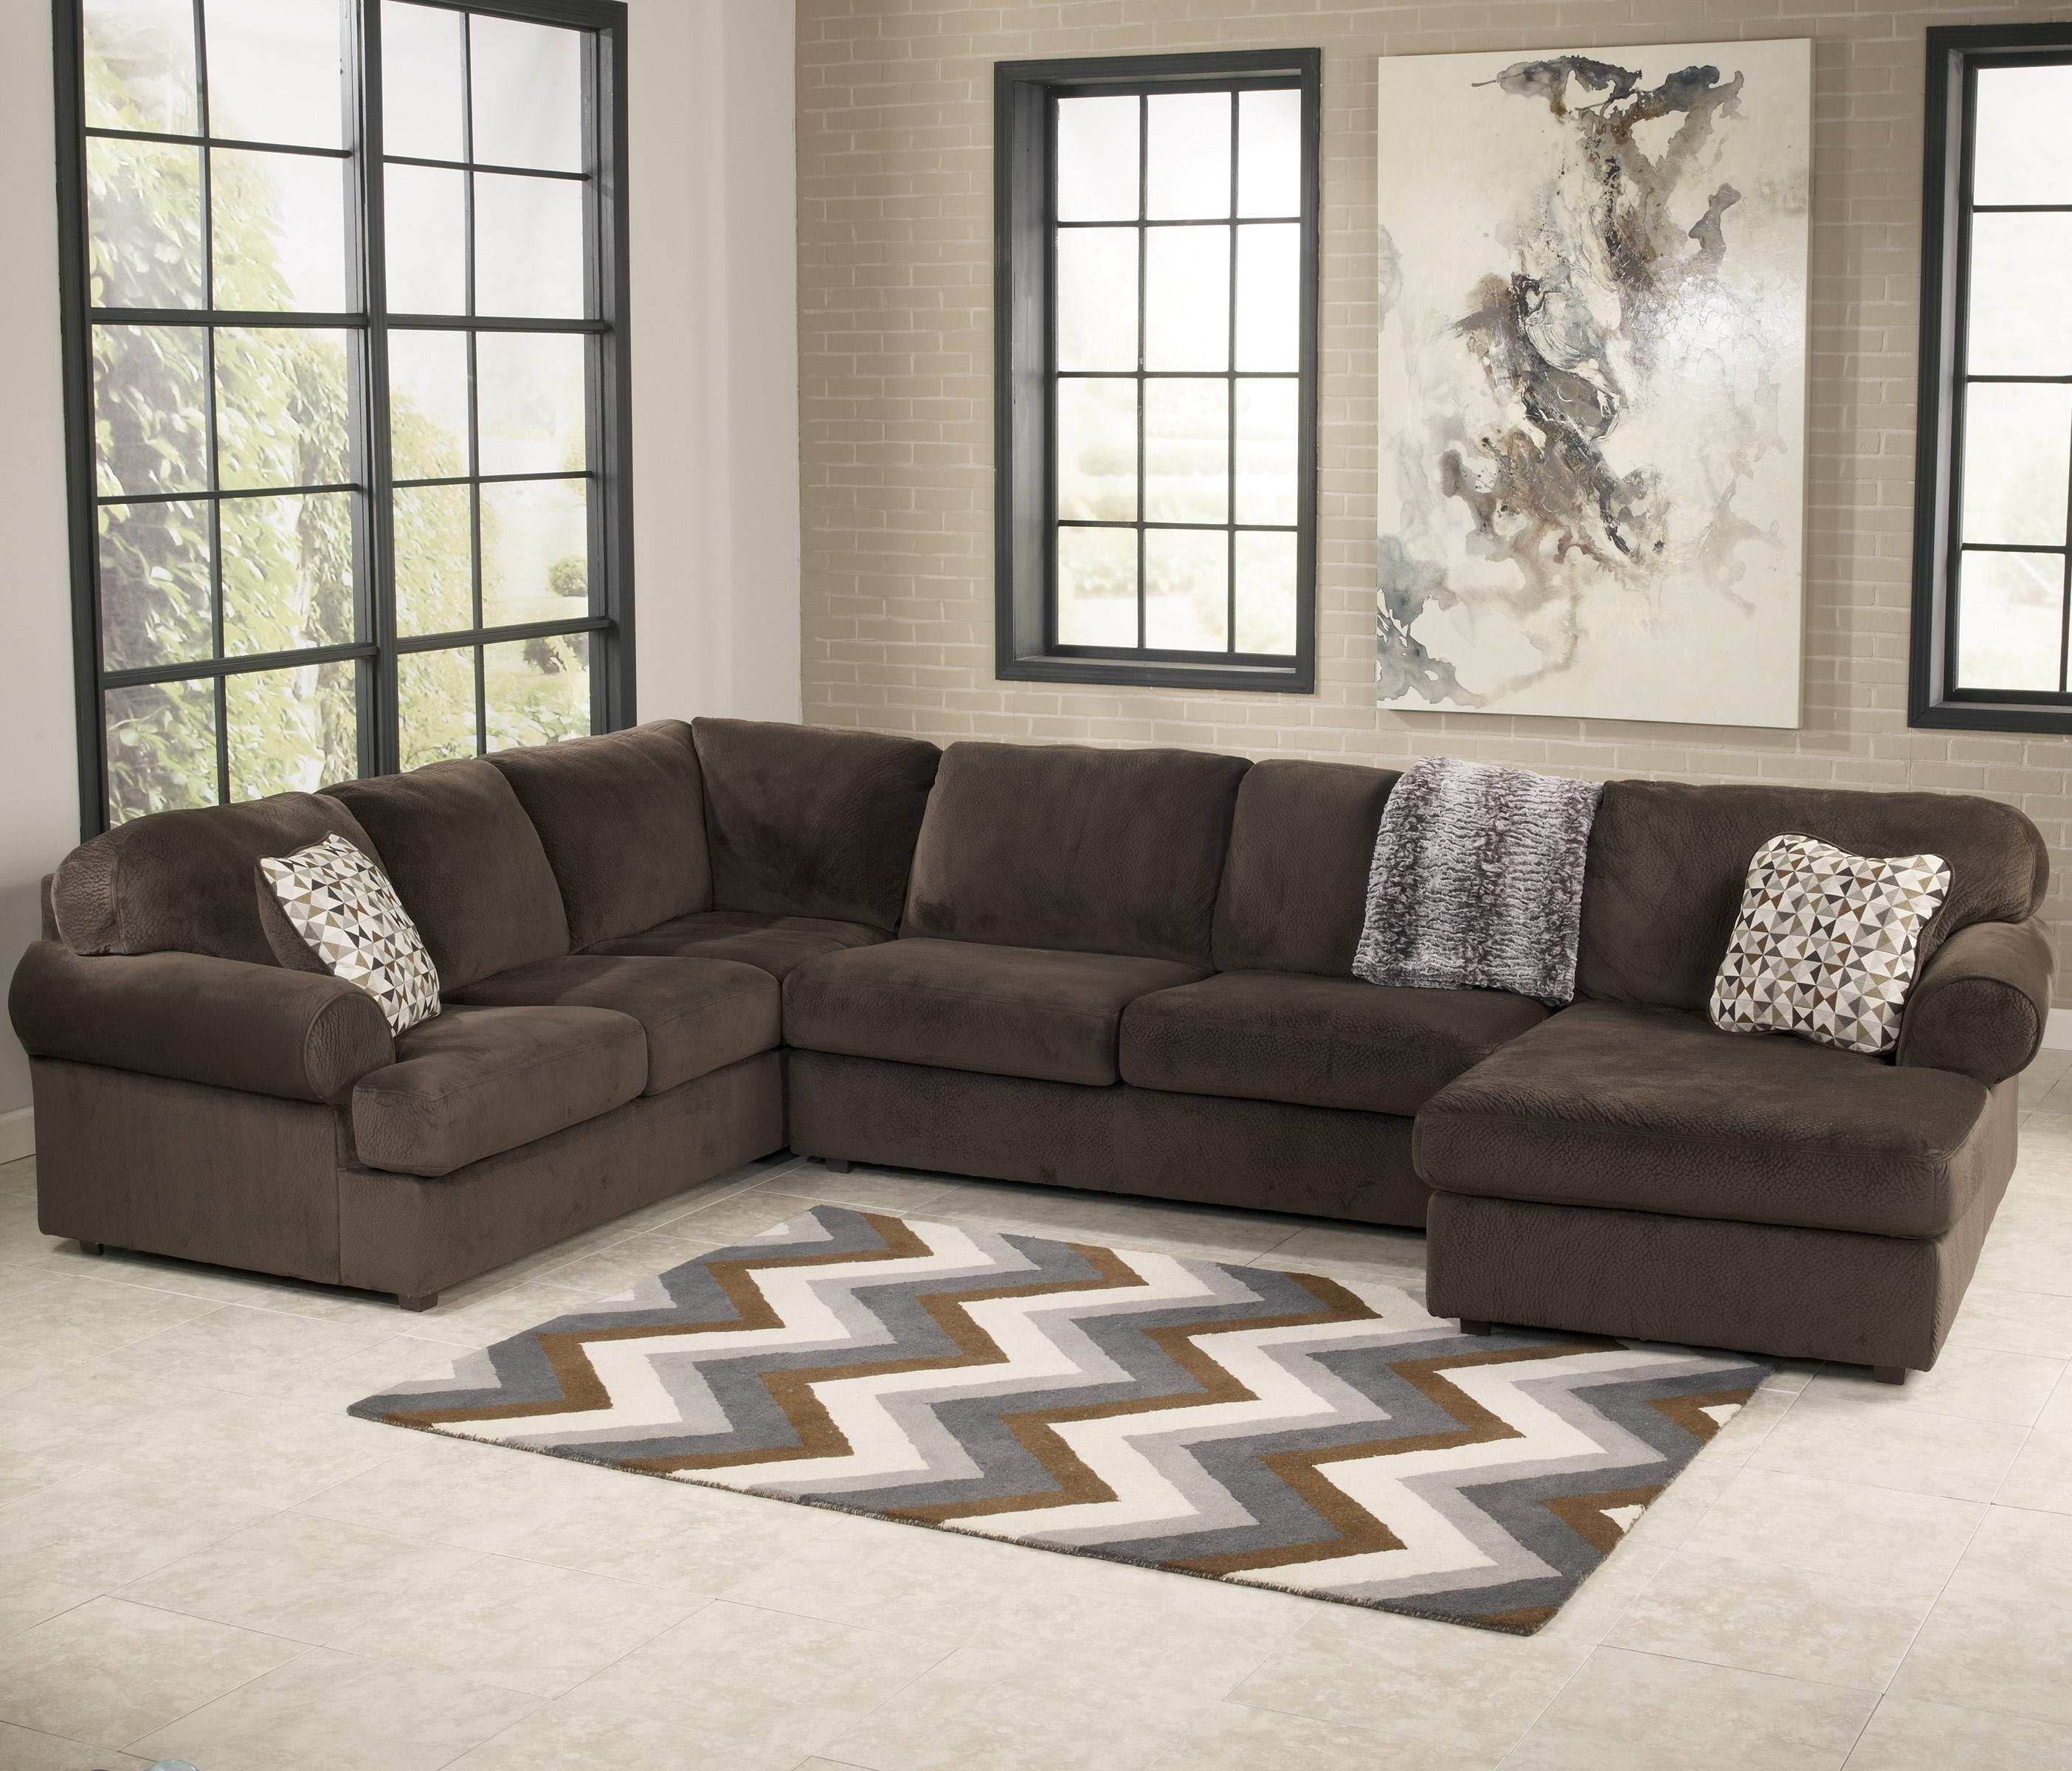 Most Popular Signature Designashley Jessa Place – Chocolate Casual With Regard To East Bay Sectional Sofas (View 12 of 20)